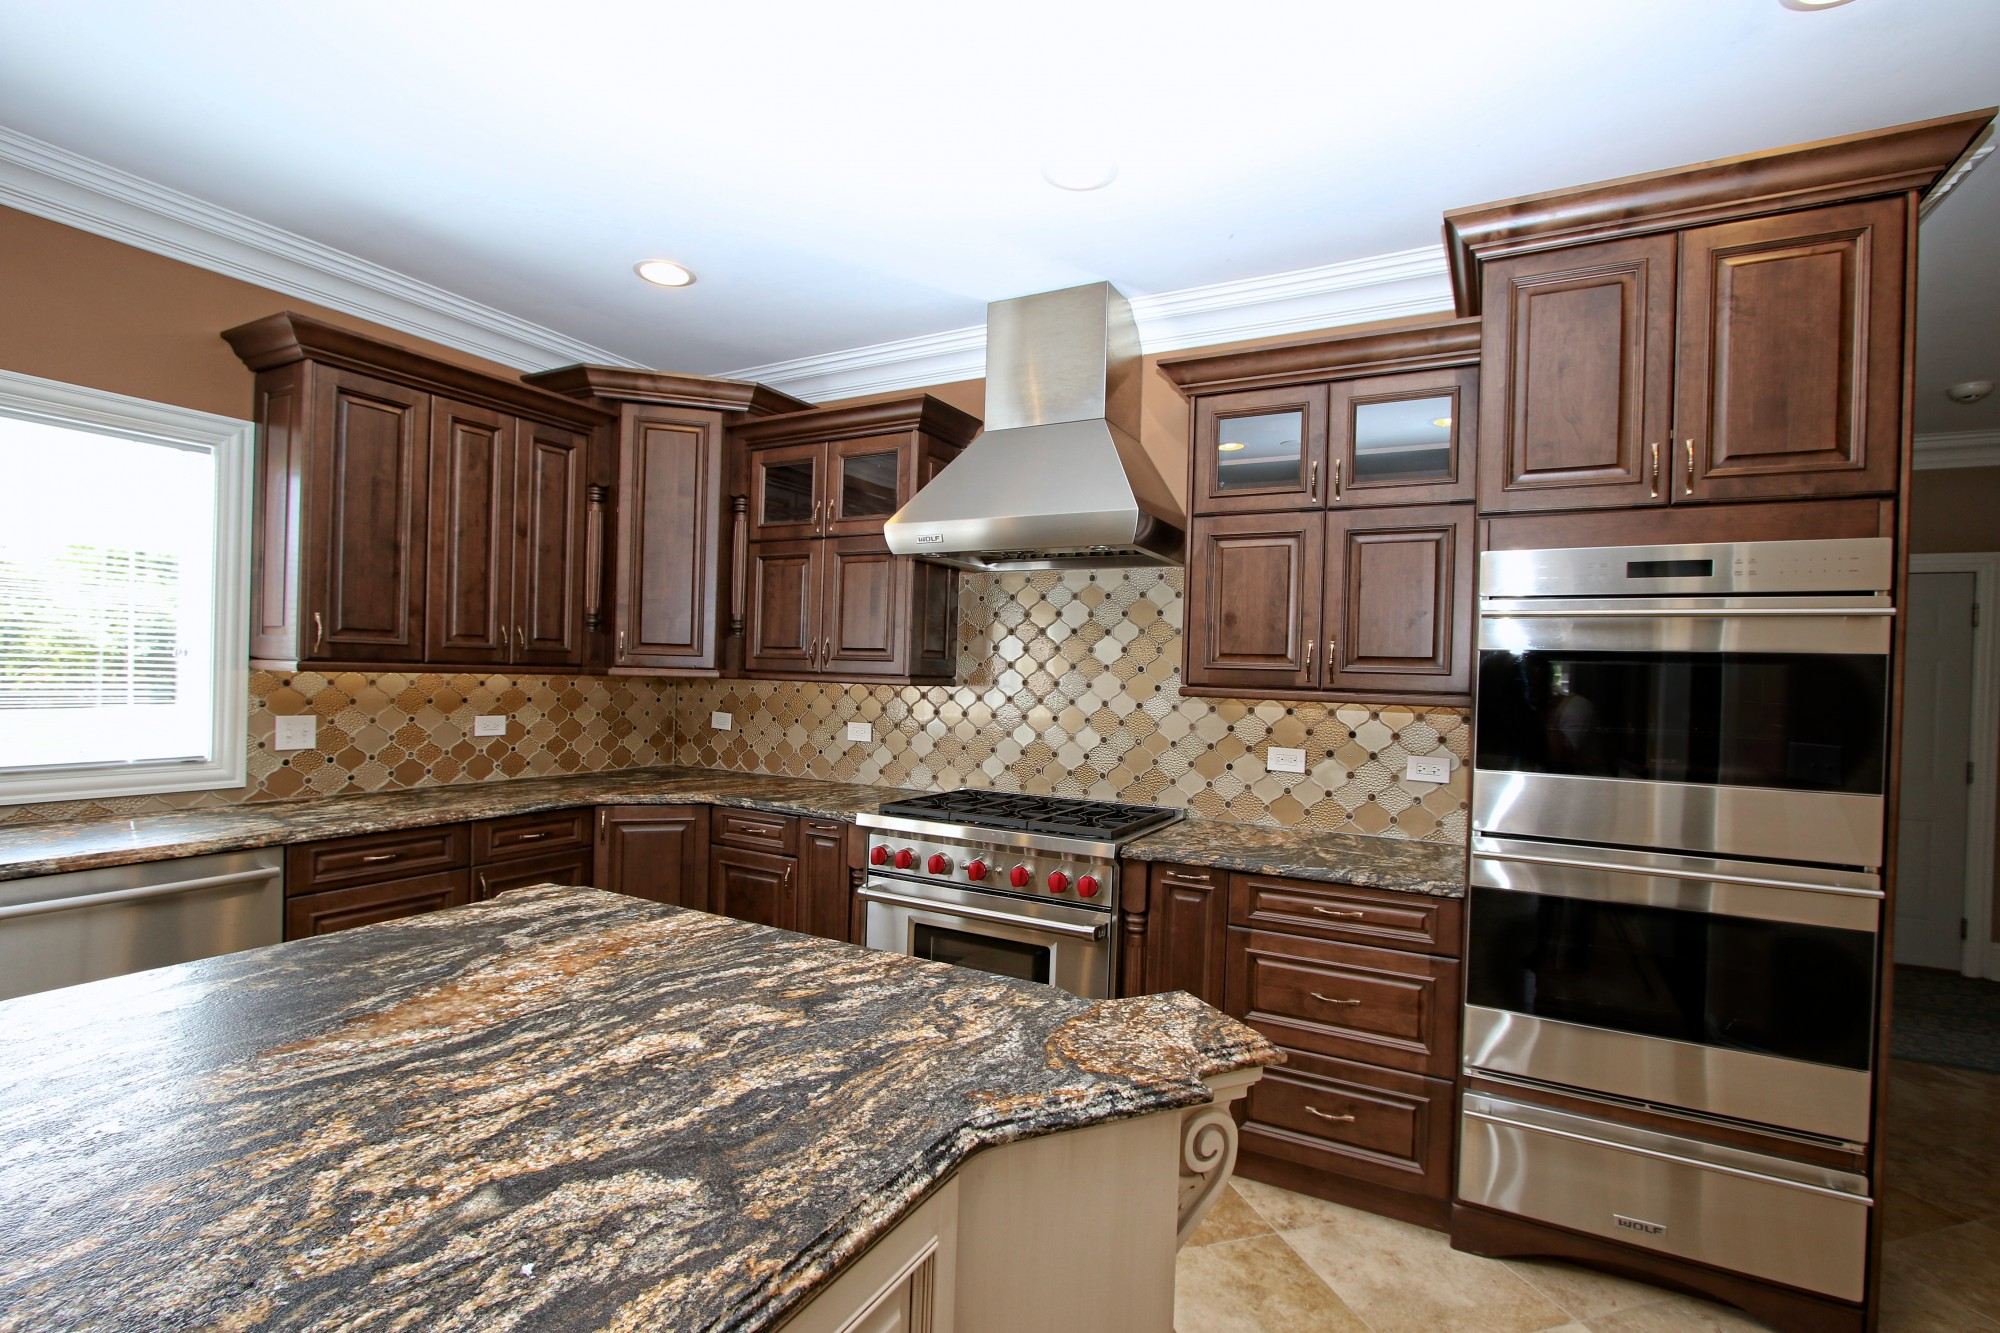 Best Kitchen Gallery: Clear Alder Cabi S Kitchen Bath Kitchen Cabi S of Alder Wood Cabinets Kitchen on cal-ite.com